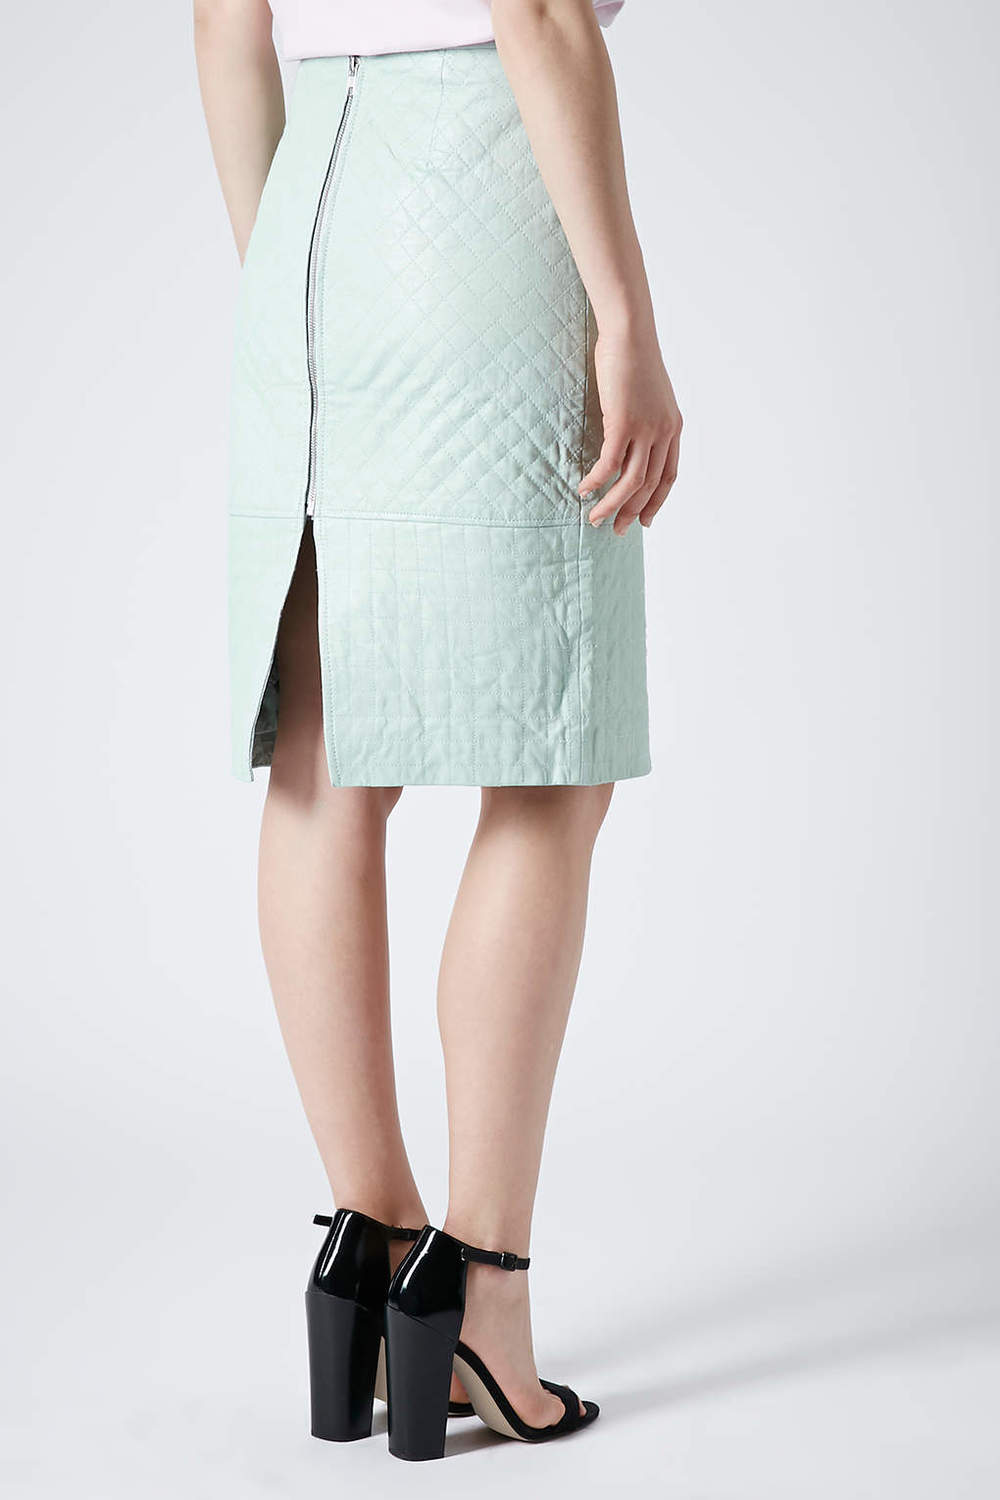 Quilt Leather pencil skirt. Topshop. $200.